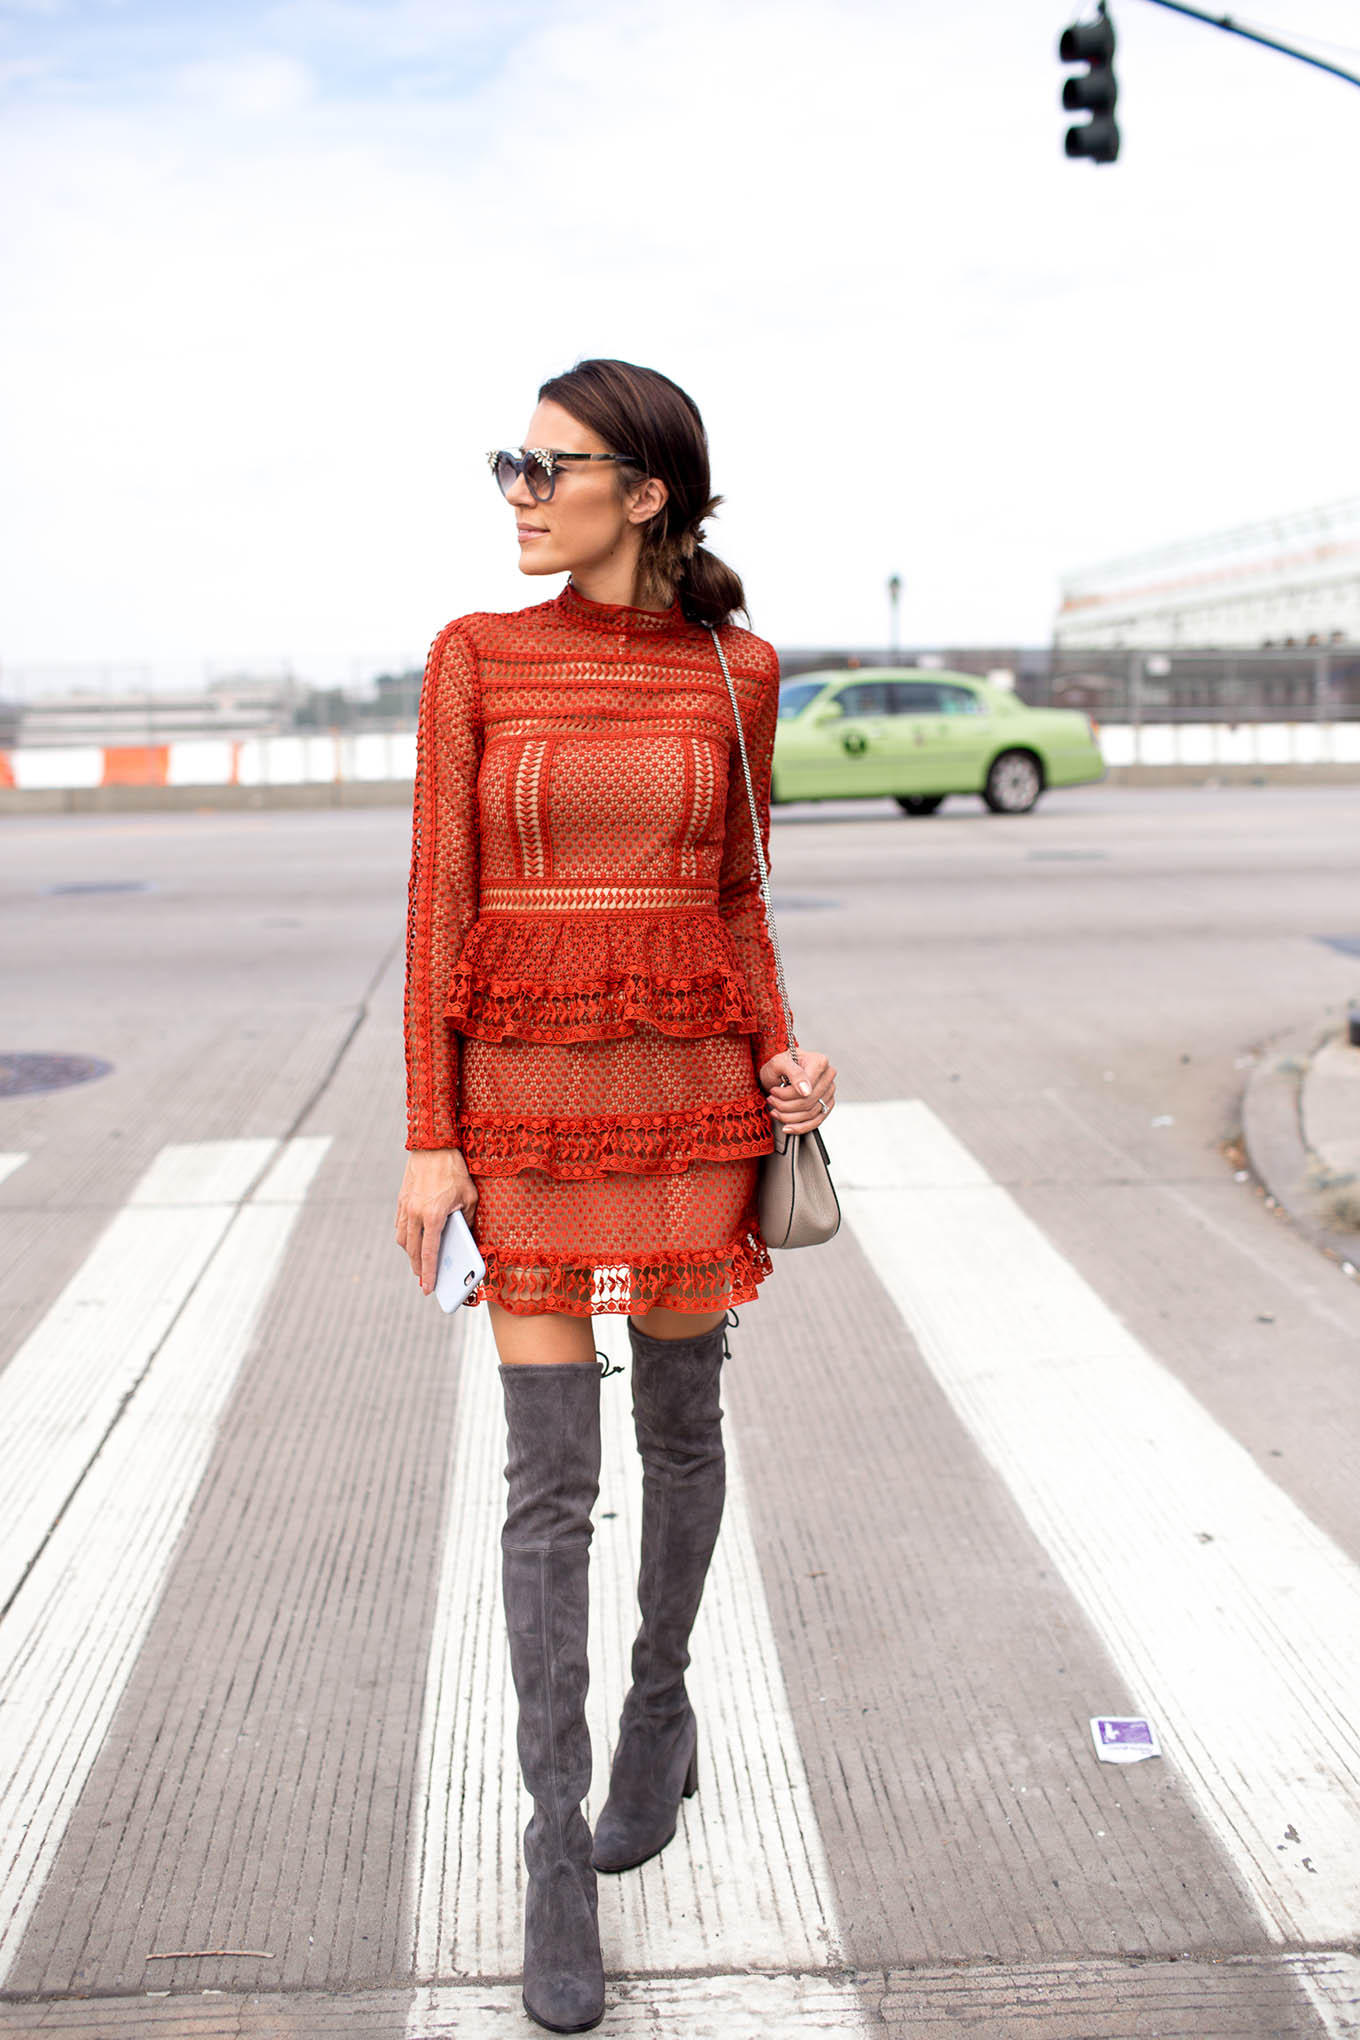 b351b42f4c2 3 Ways To Wear Your Over-the-Knee Boots